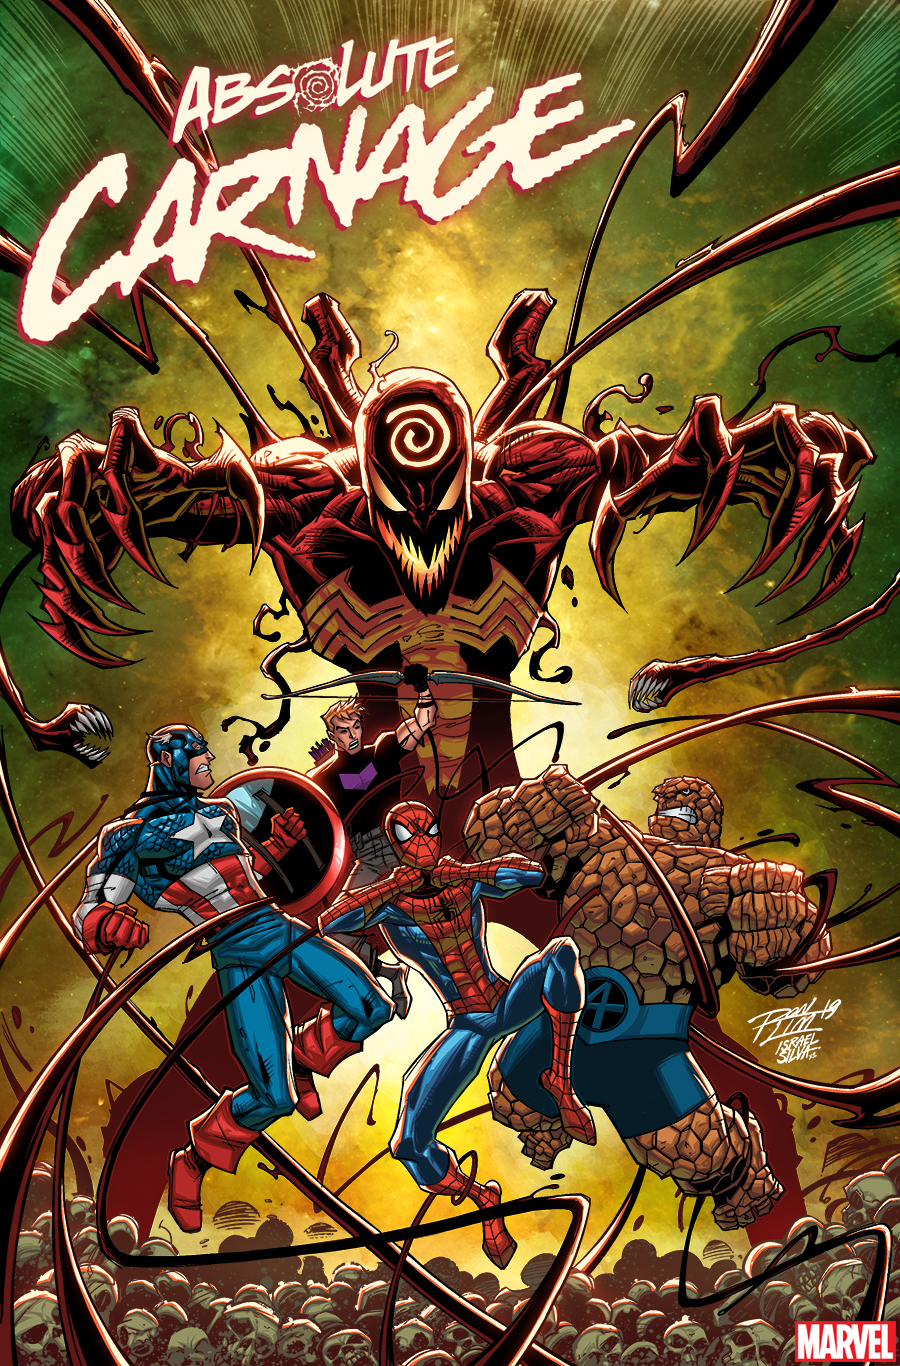 ABSOLUTE CARNAGE #3 (OF 5) RON LIM VAR AC